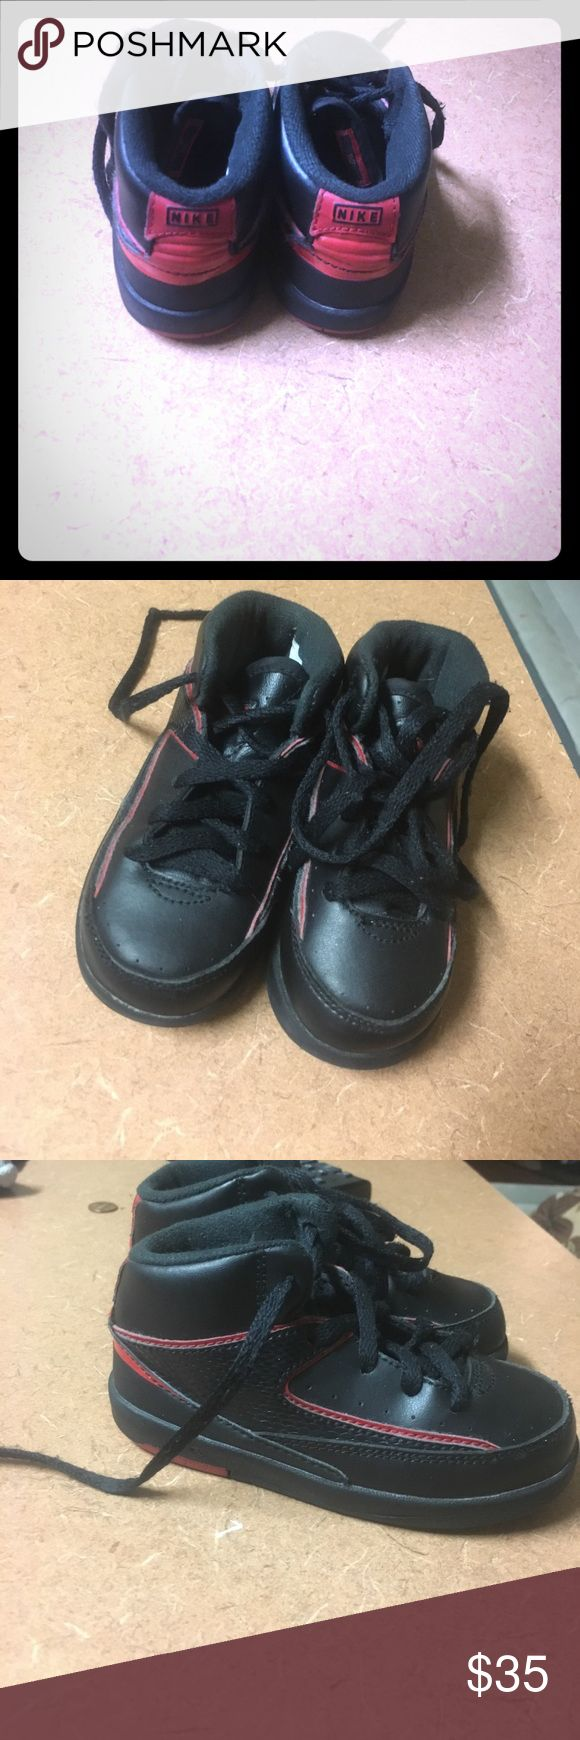 Boy toddler Jordans Used Jordan shoes, worn a few times but barely noticeable Jordan Shoes Sneakers